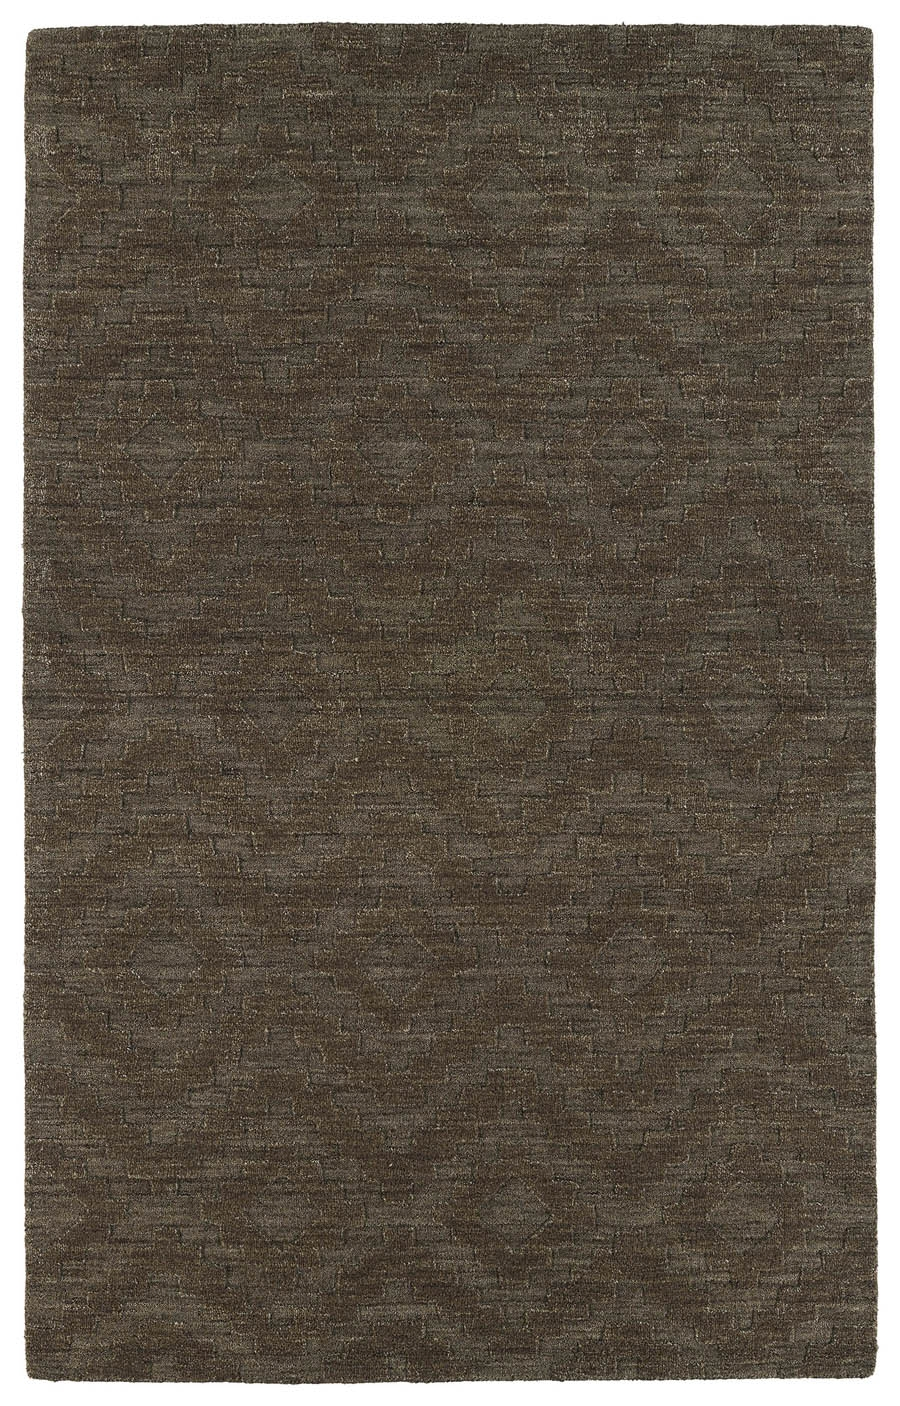 Kaleen Imprints Modern IPM04 40 Chocolate Rug